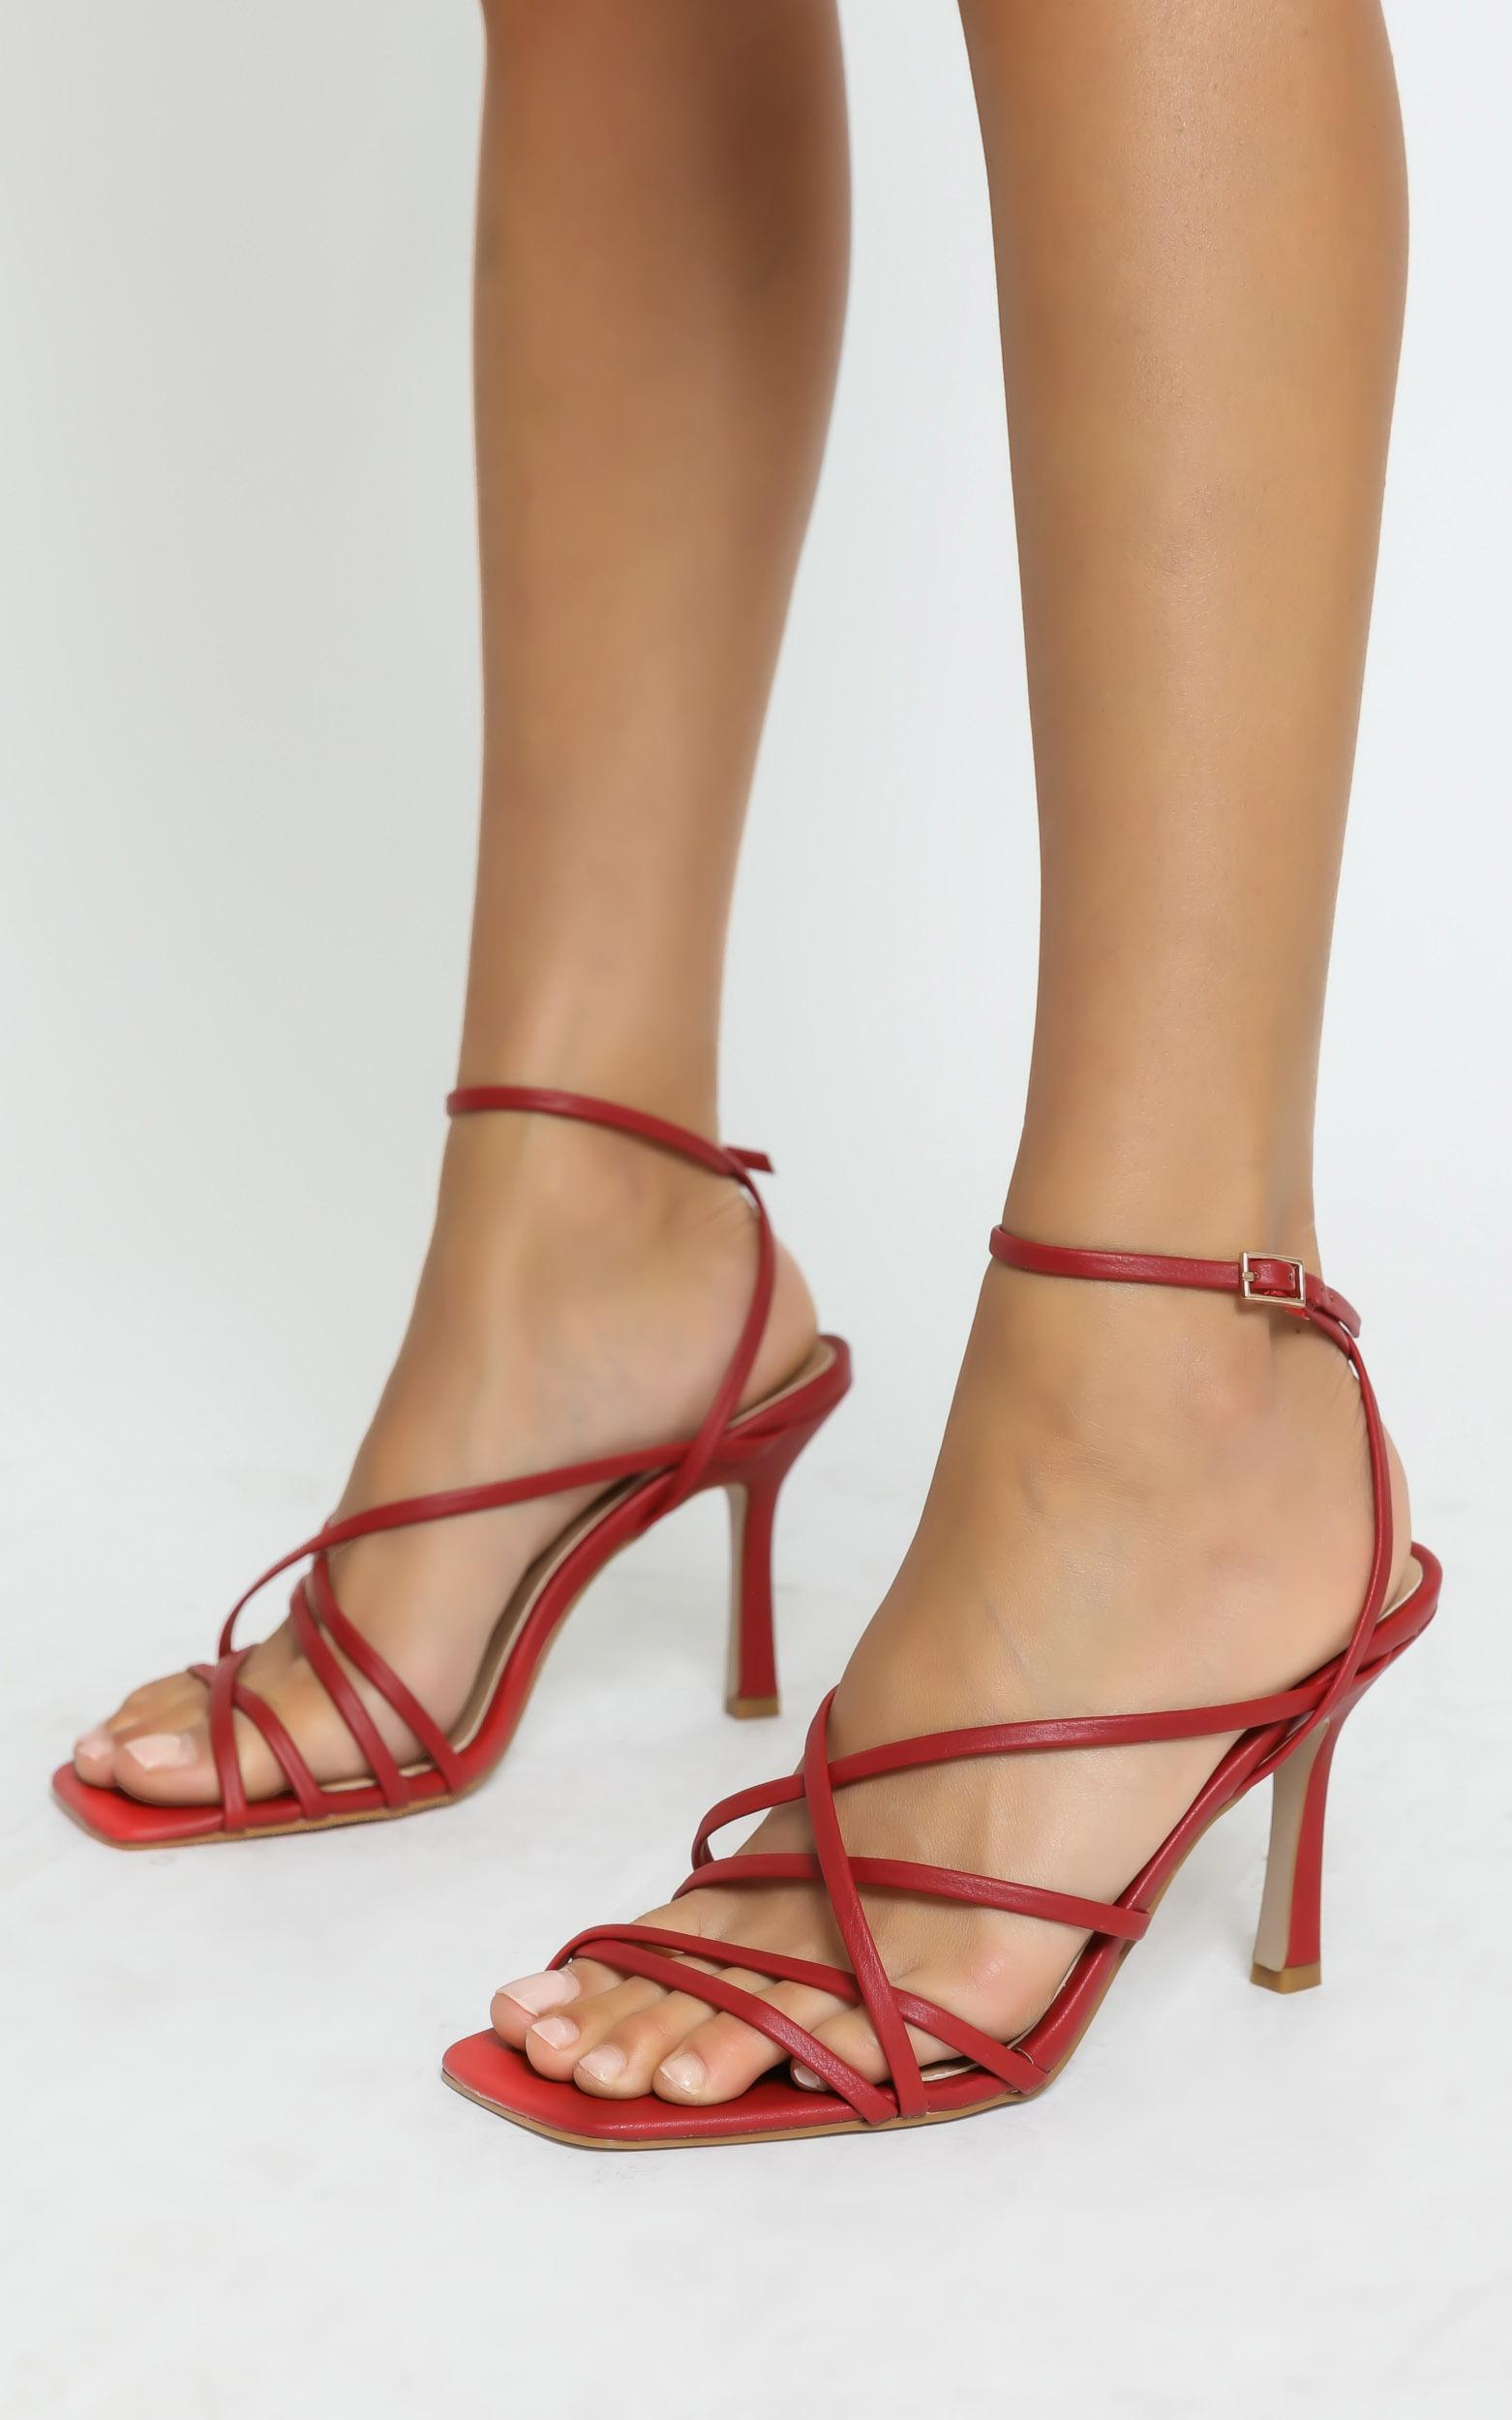 Billini - Scout Heels in Dark Red - 5, RED1, hi-res image number null